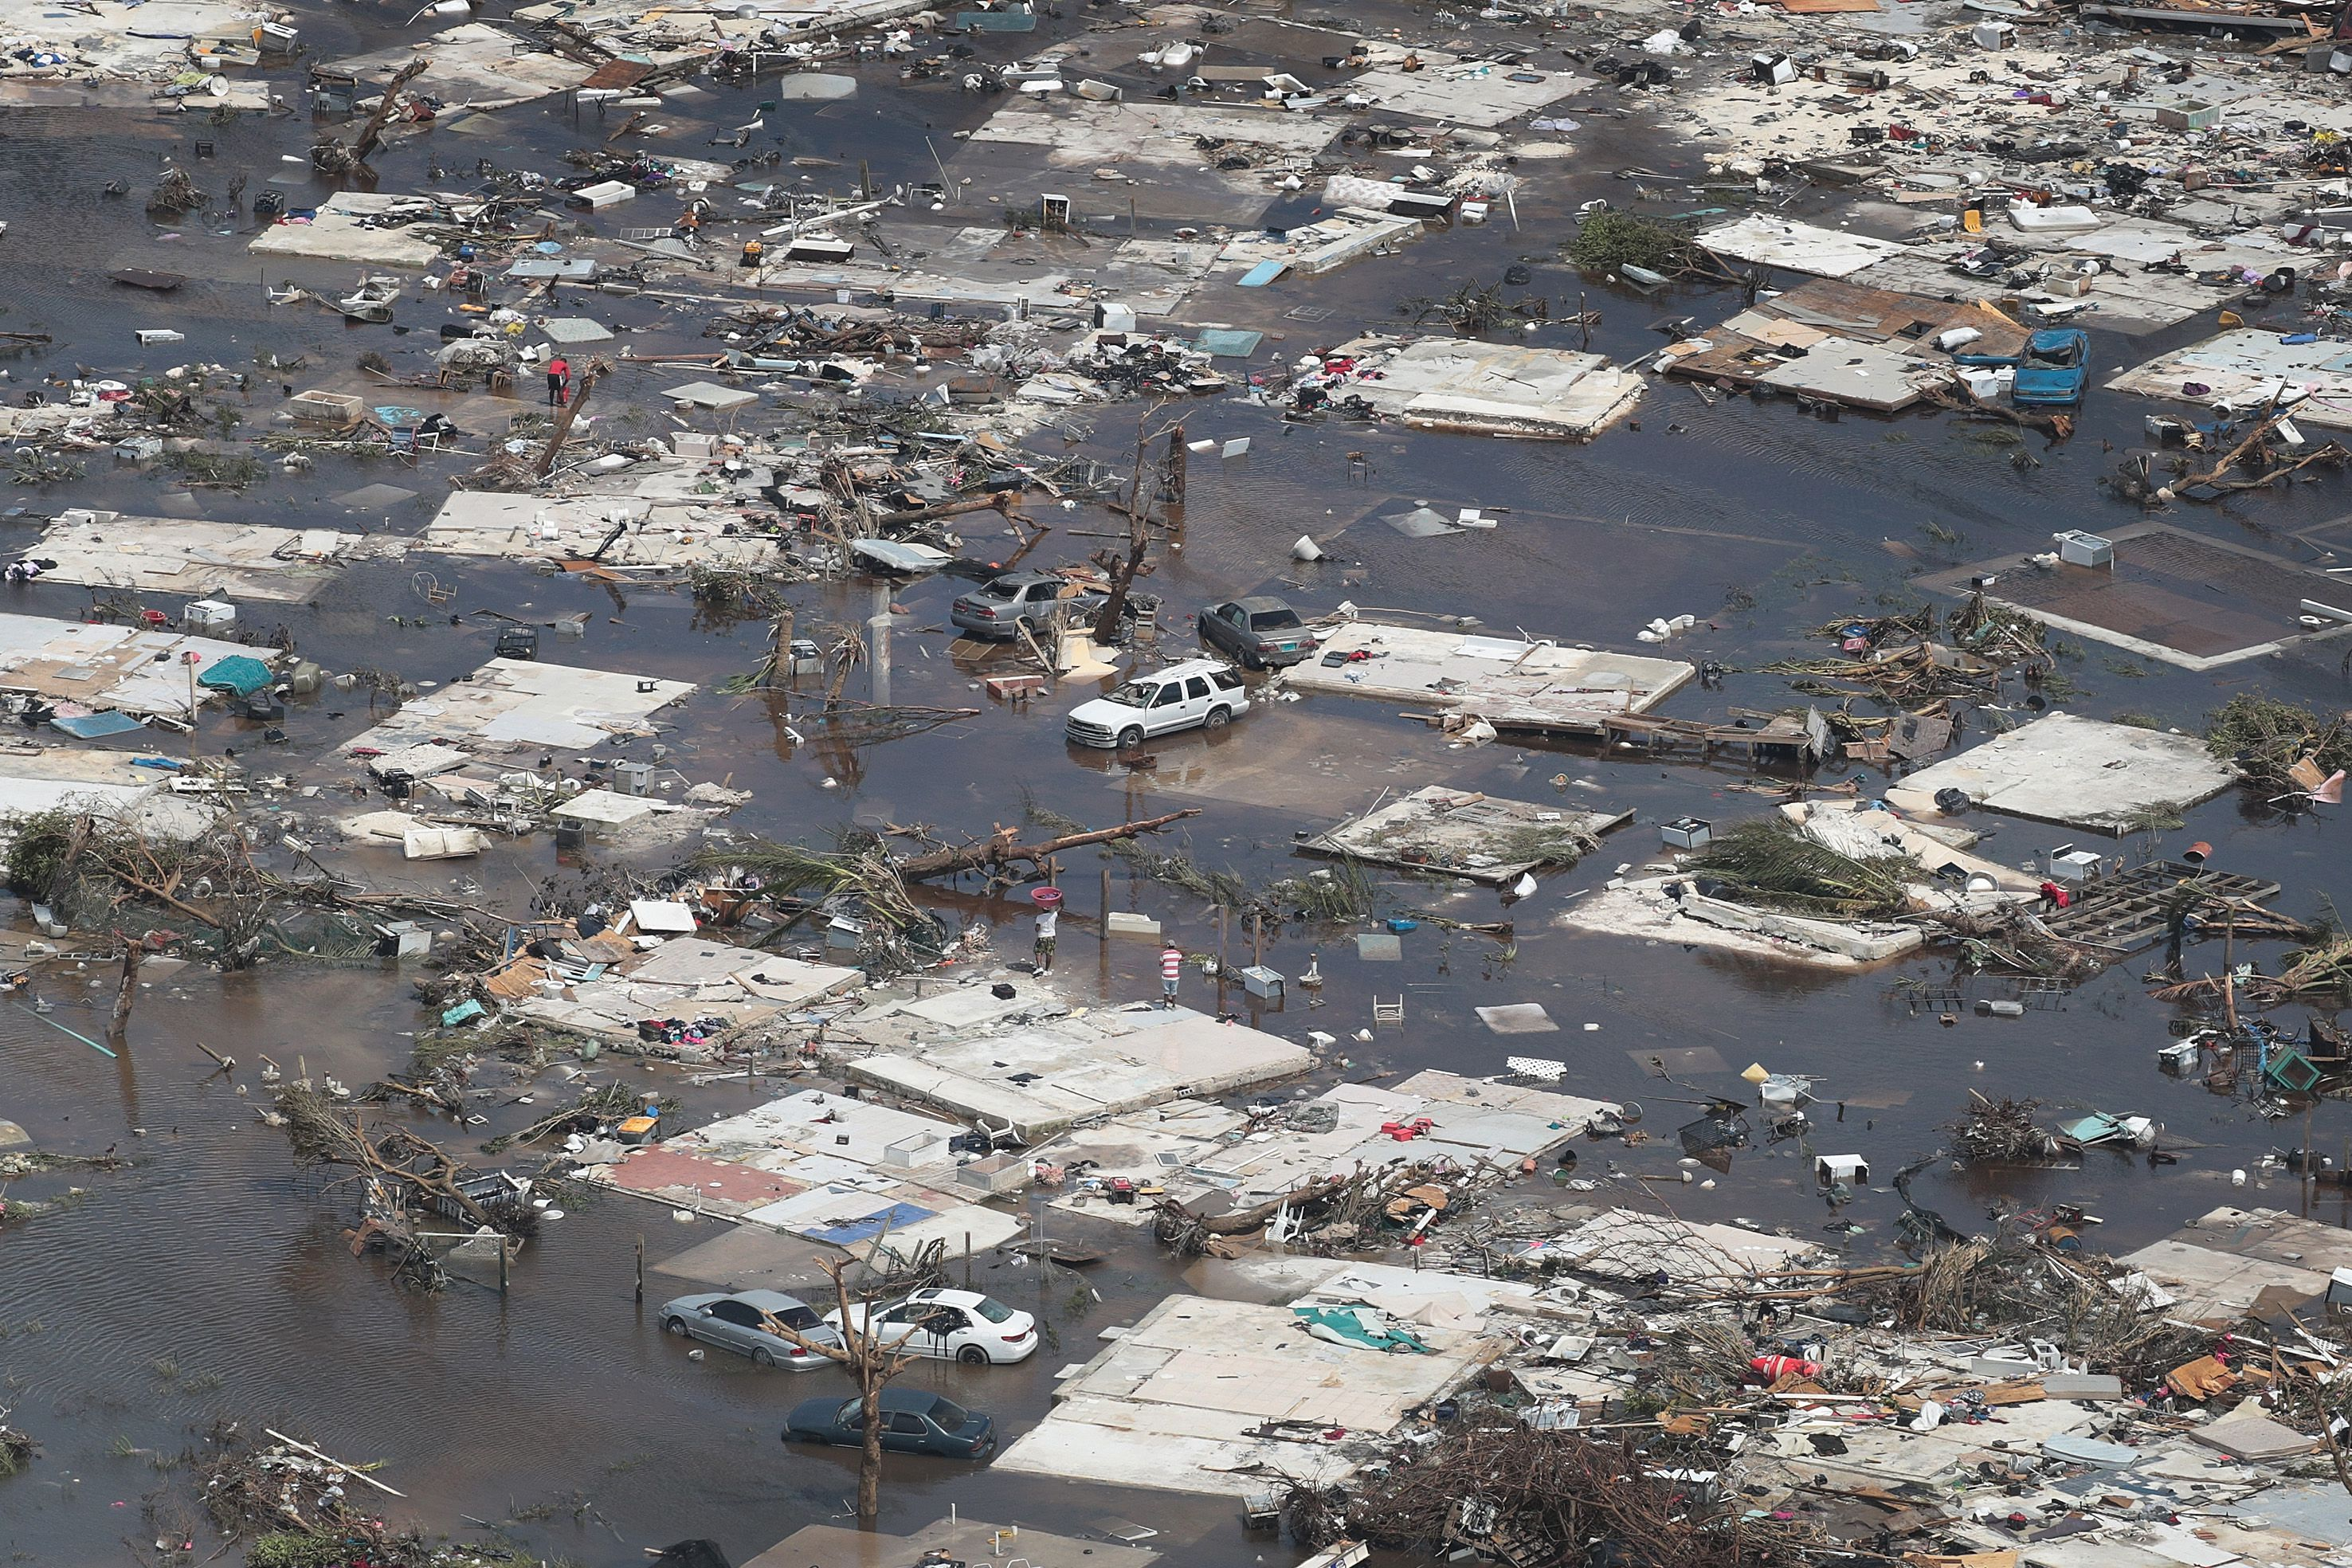 An aerial view of damage caused by Hurricane Dorian is seen in Marsh Harbour on Great Abaco Island